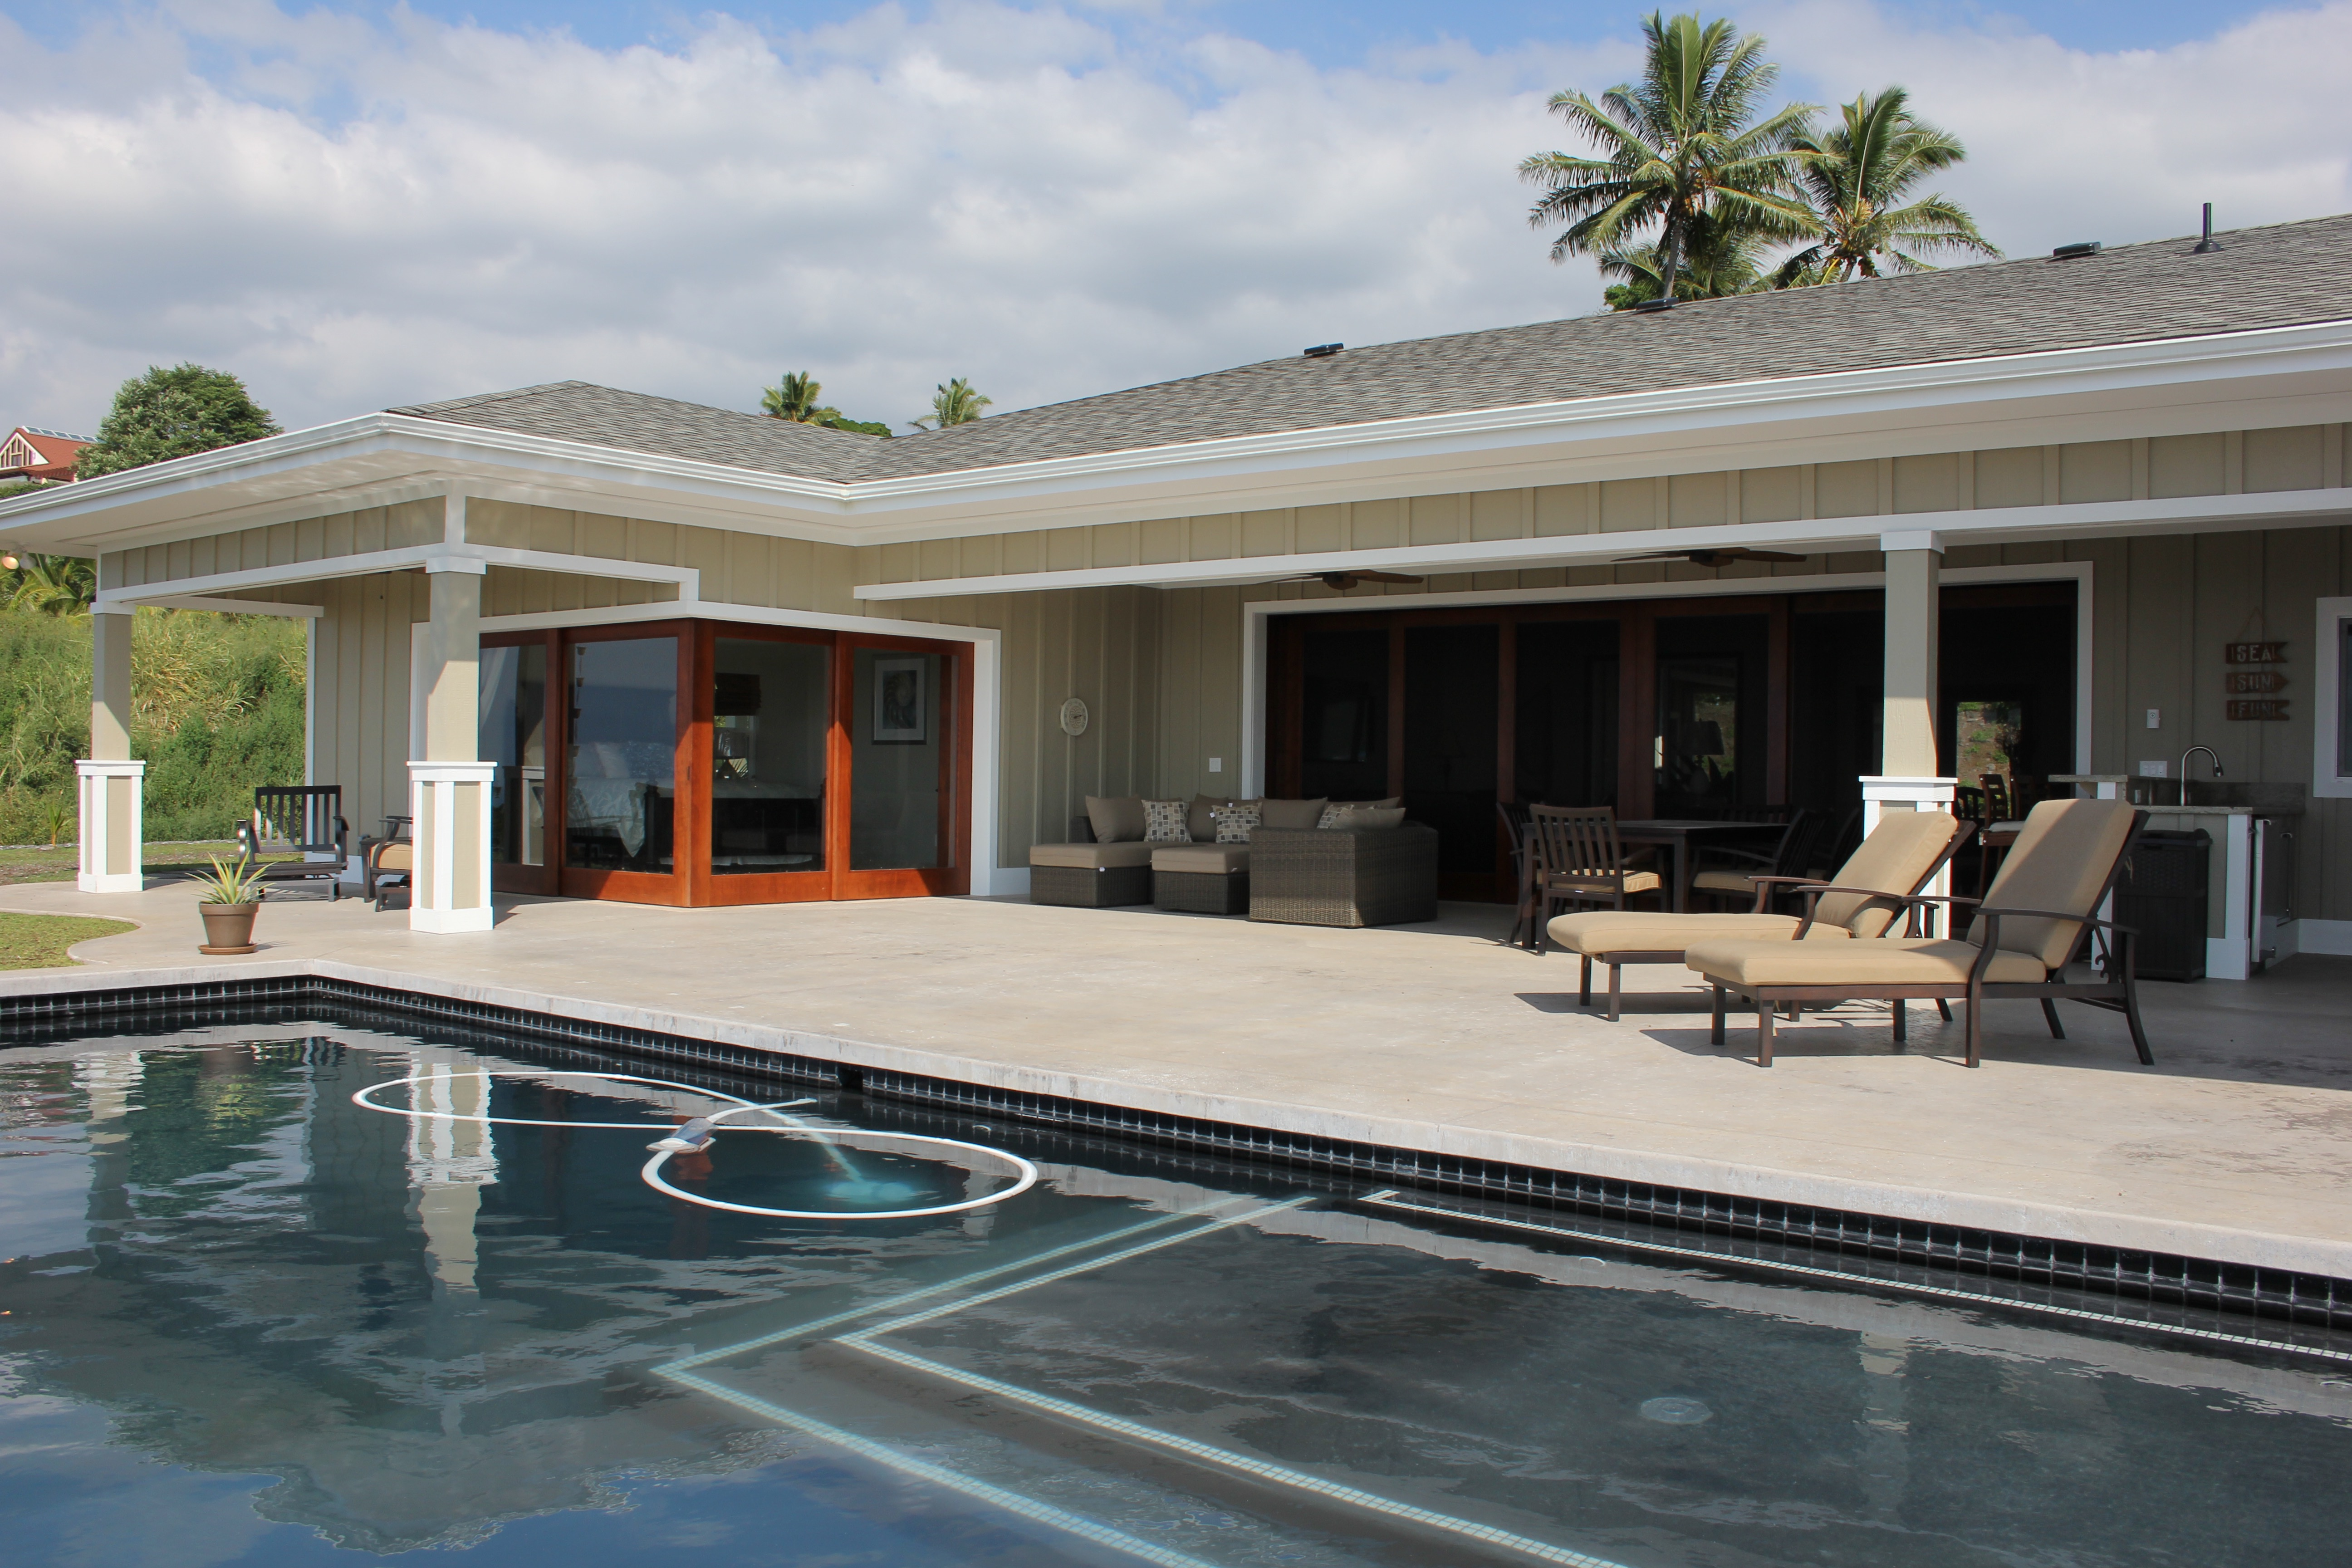 Pool and sundeck area.